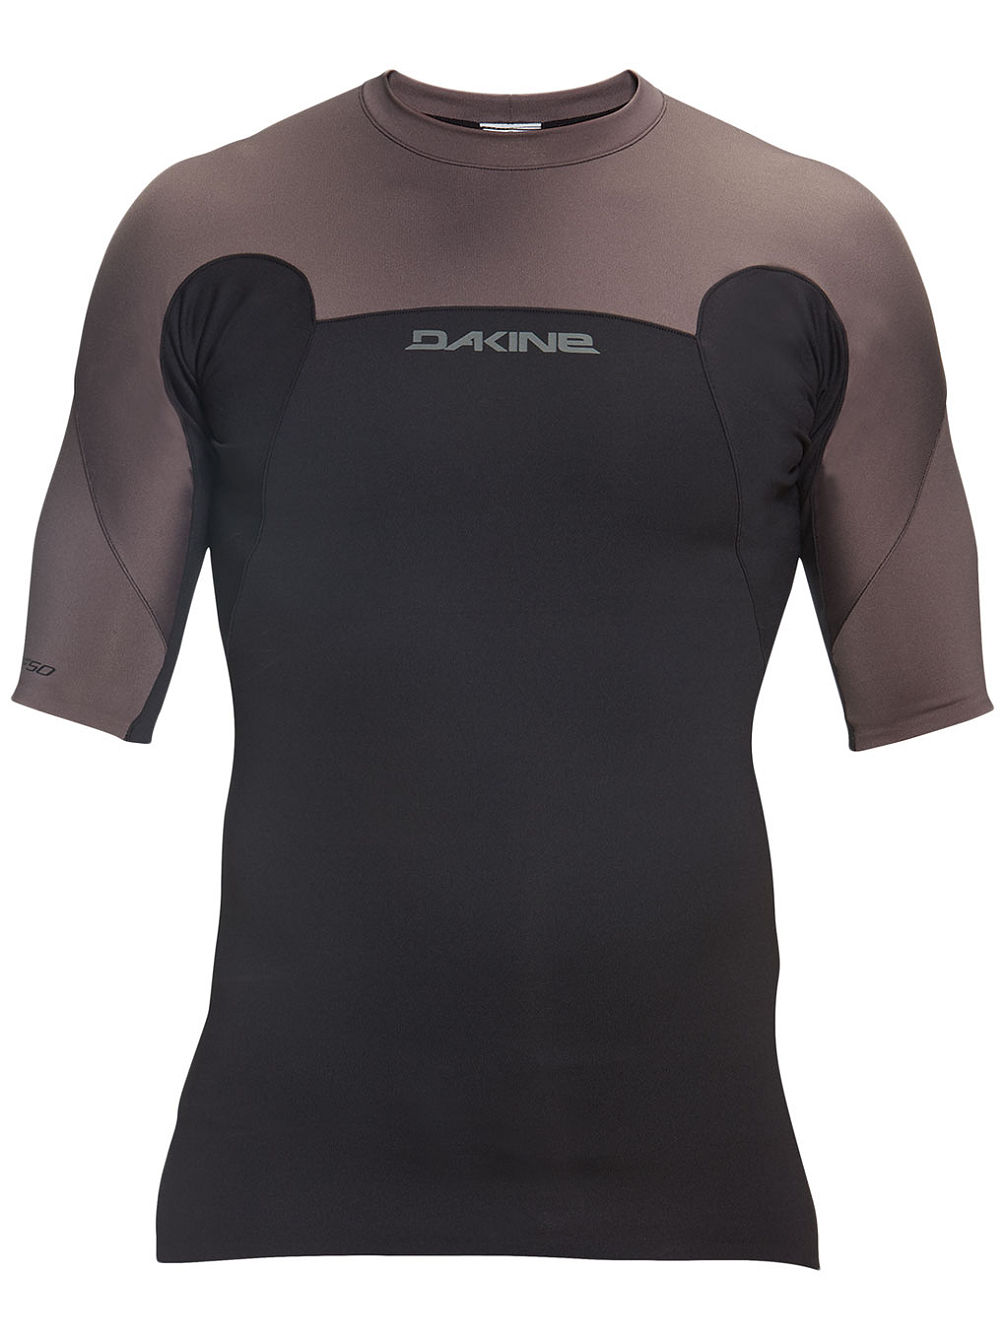 Covert Snug Fit Jersey